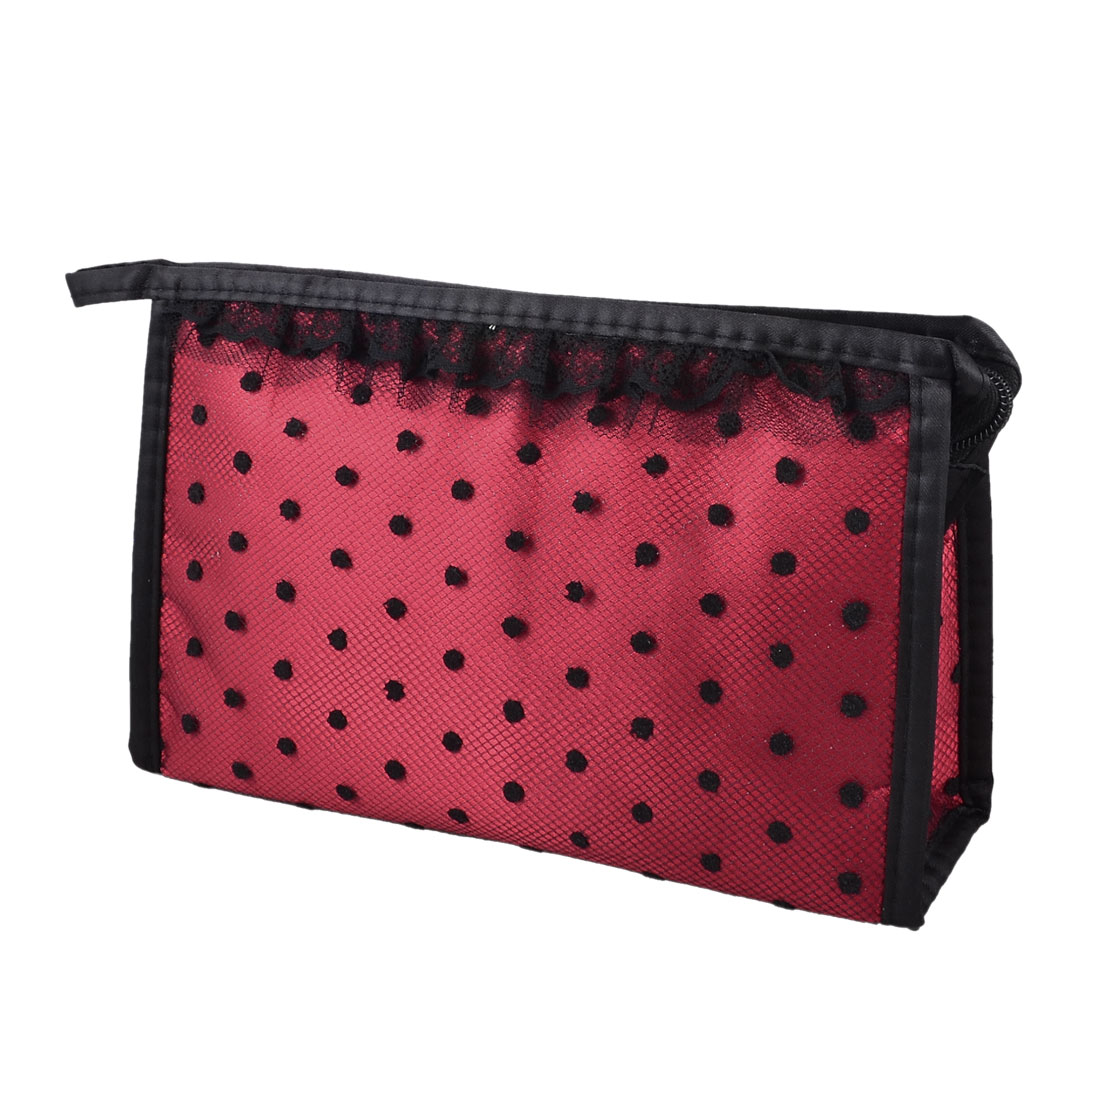 Zipper Rectangular Black Lace Dotted Meshy Cosmetic Makeup Bag Case Organizer Red